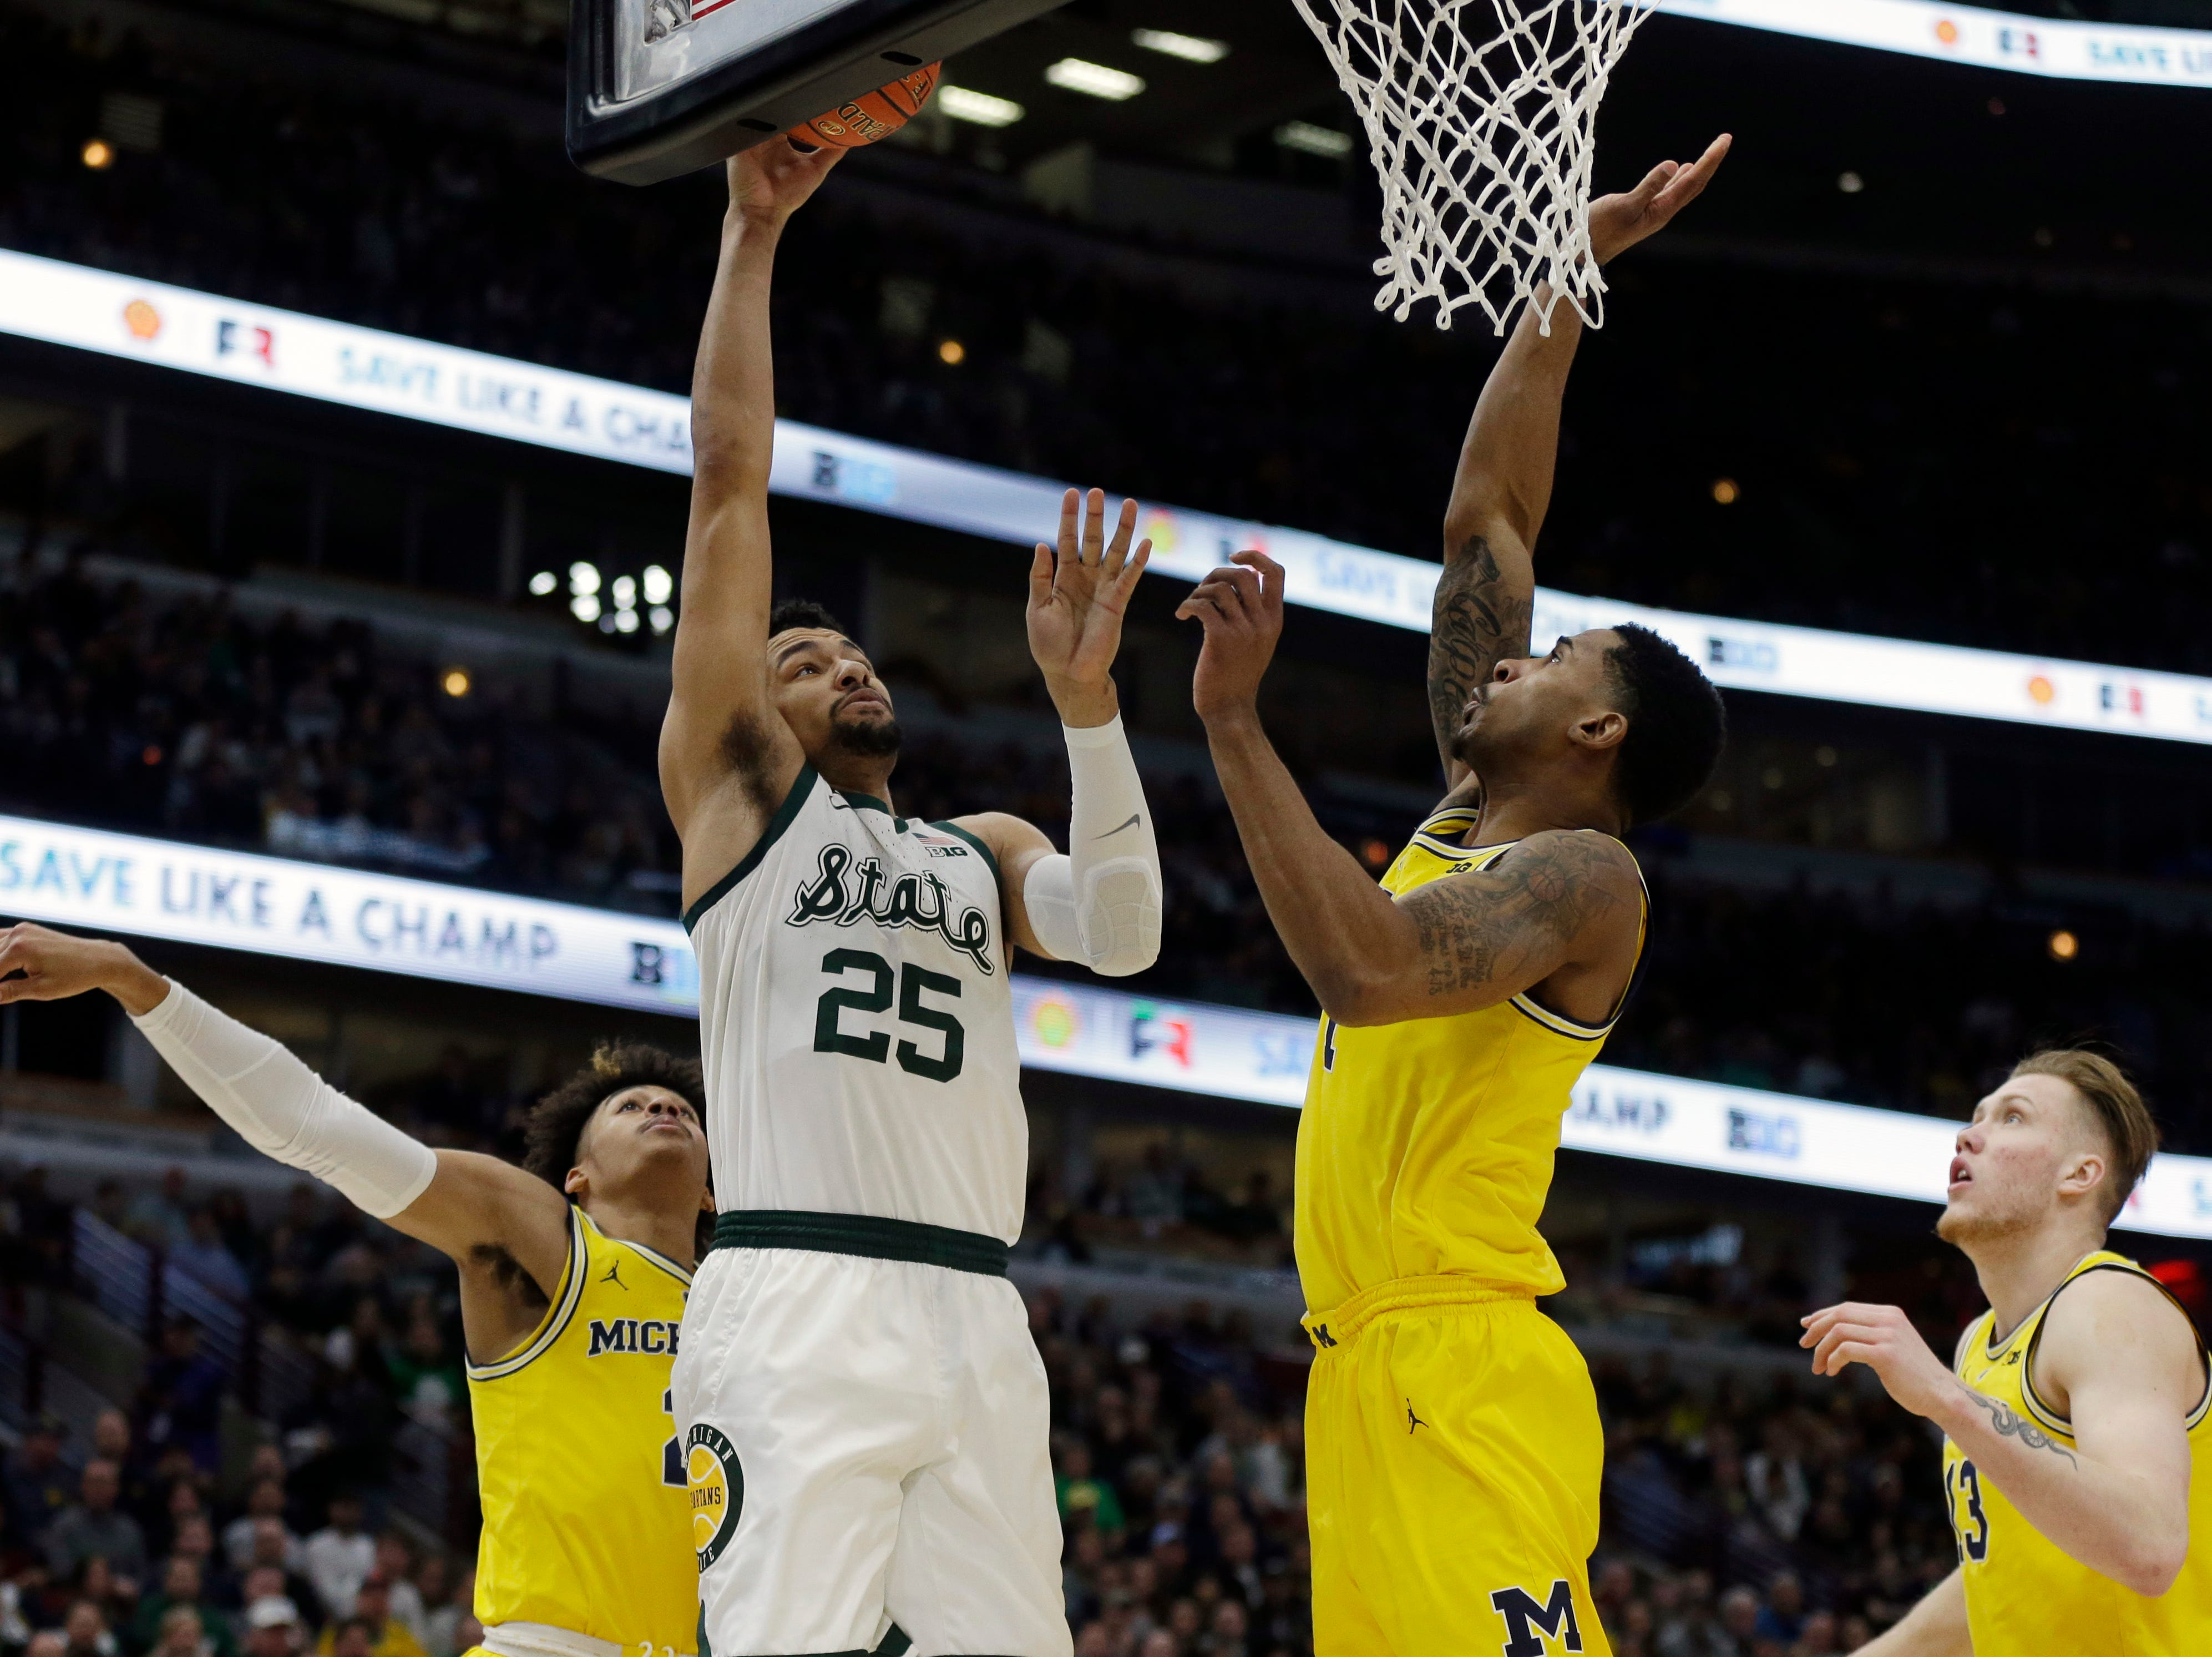 Michigan State's Kenny Goins (25) goes up for a basket against Michigan's Charles Matthews (1) during the first half of an NCAA college basketball championship game in the Big Ten Conference tournament, Sunday, March 17, 2019, in Chicago.